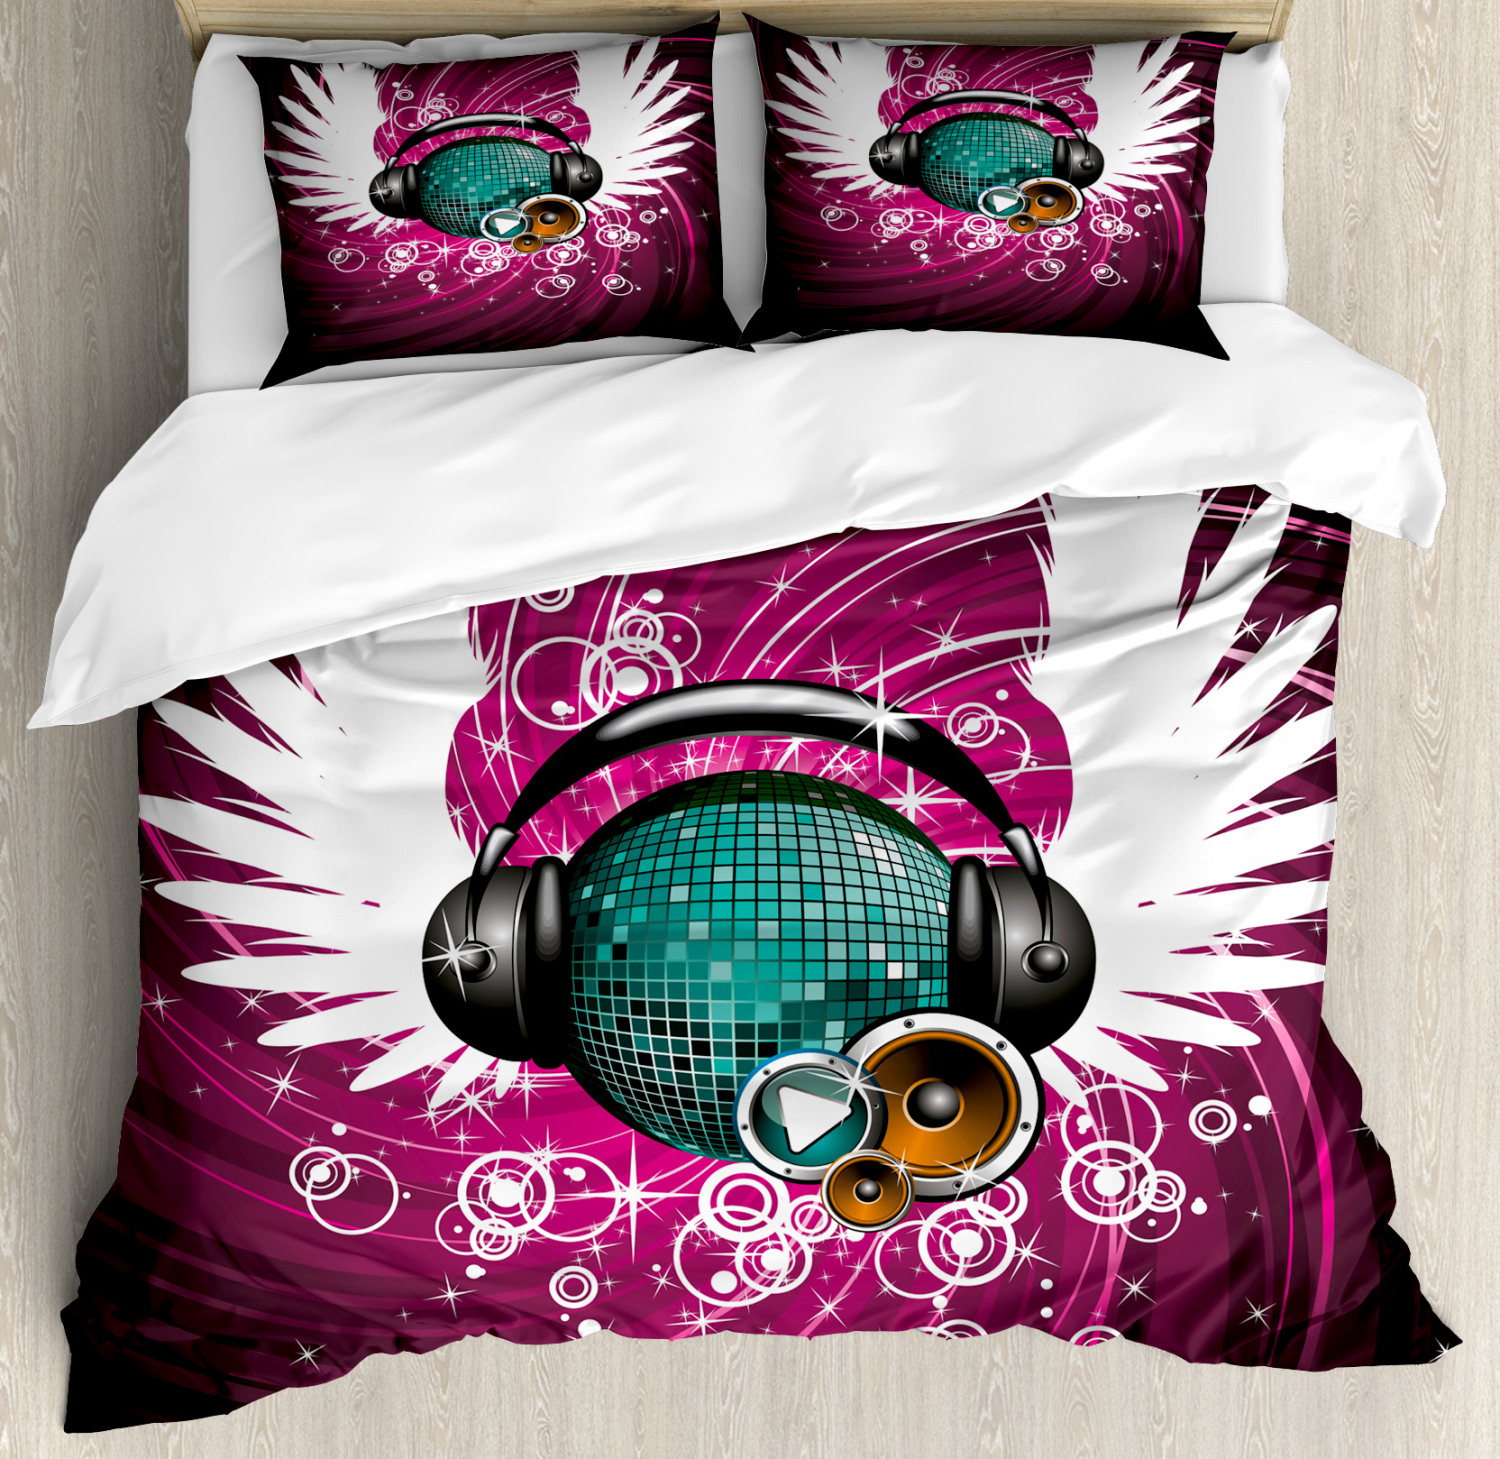 Popstar Party Duvet Cover Set with Pillow Shams Disco Ball Music Print